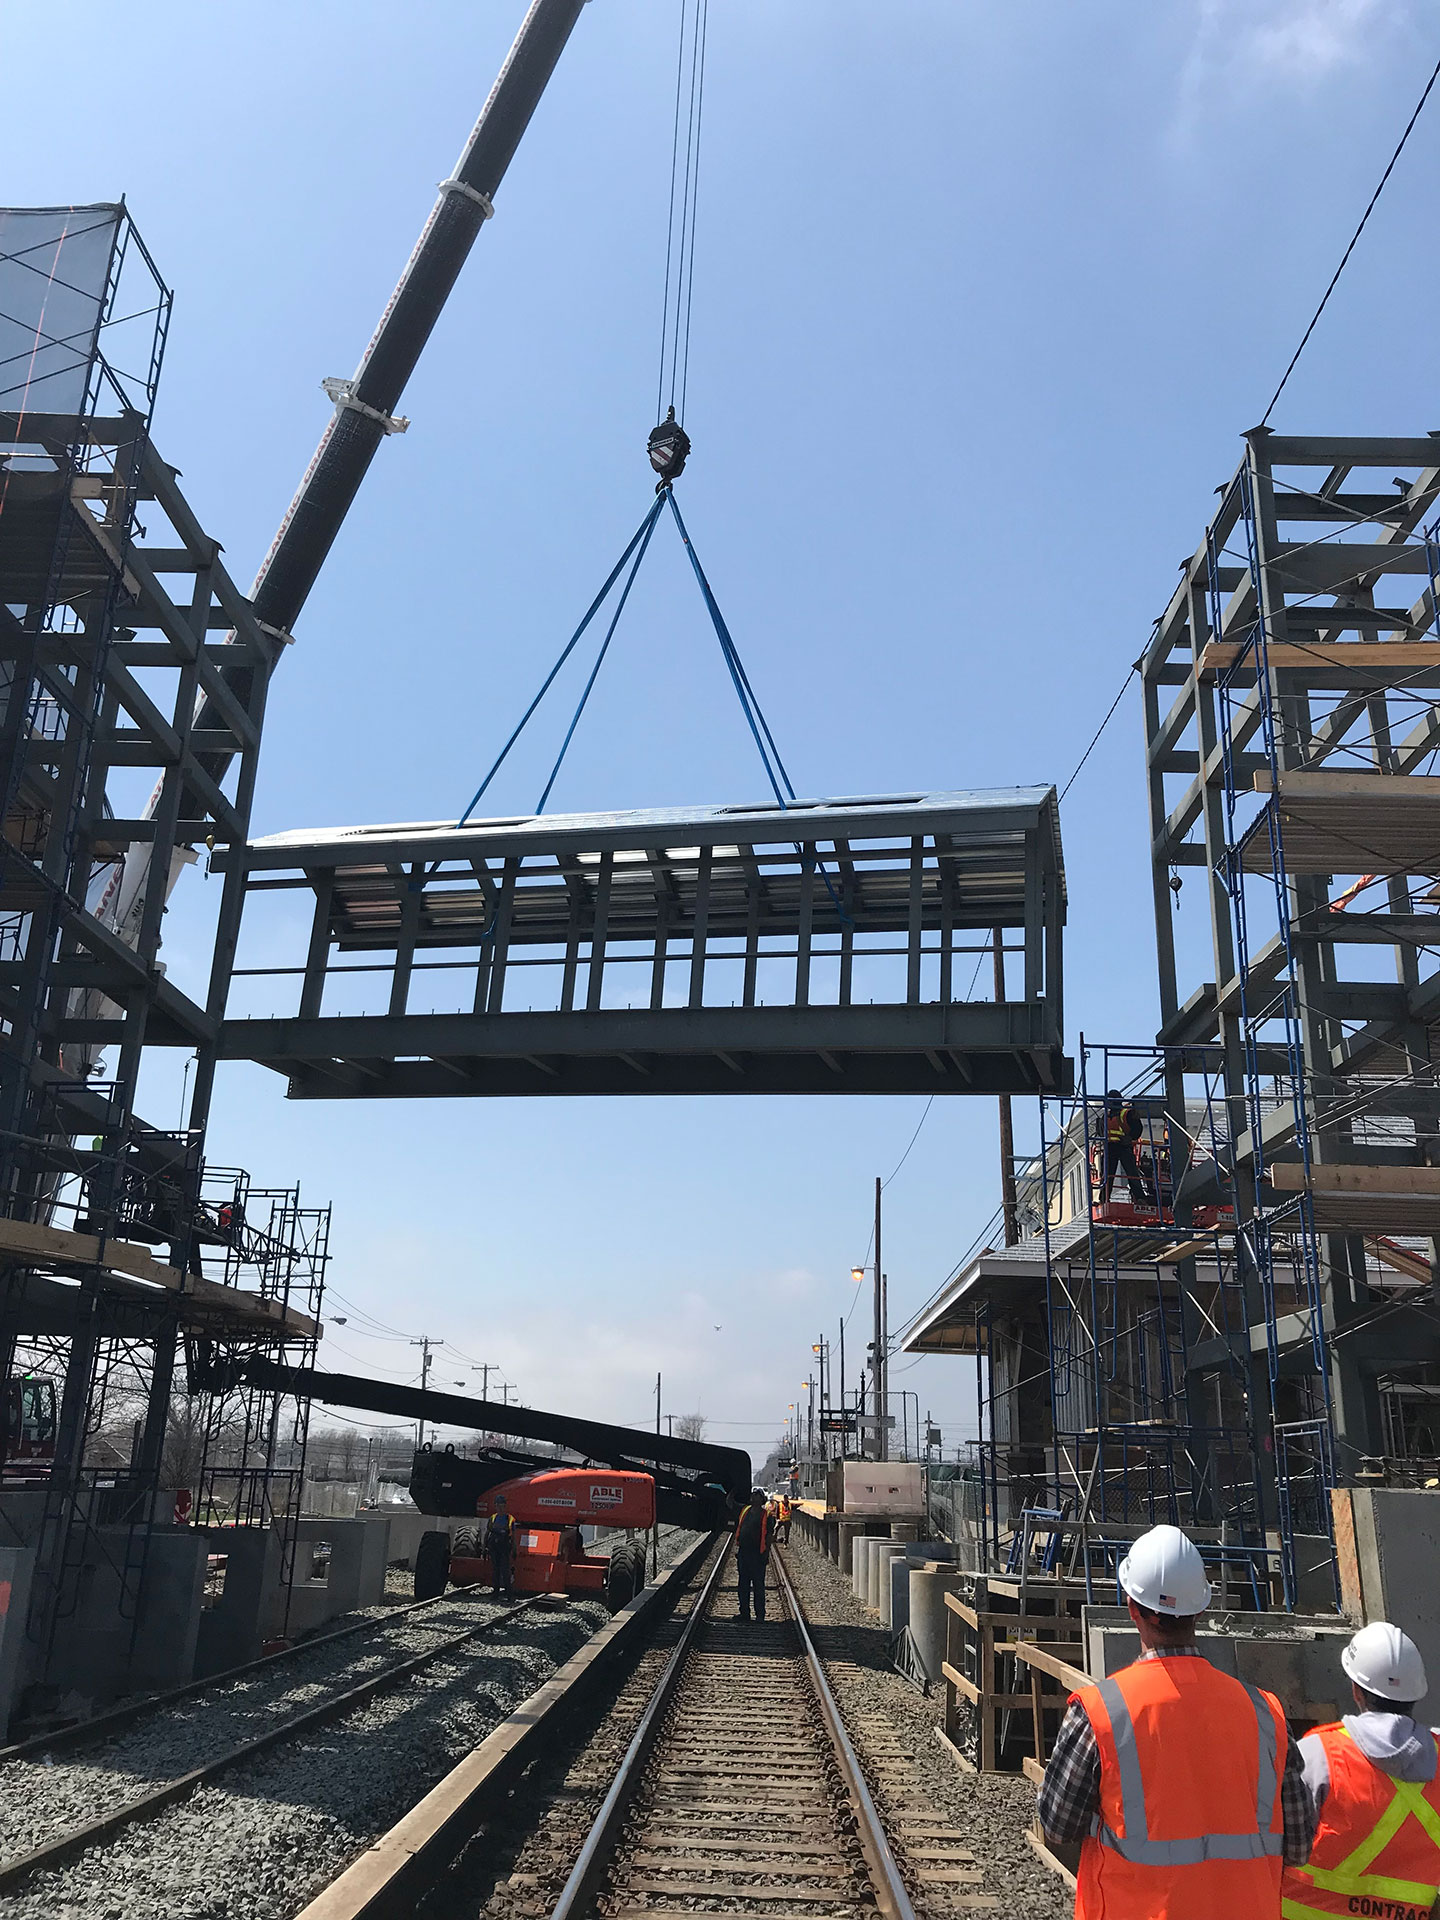 We worked closely with the contractor to progress the design and facilitate constructability and were in the field daily for the final months of construction.